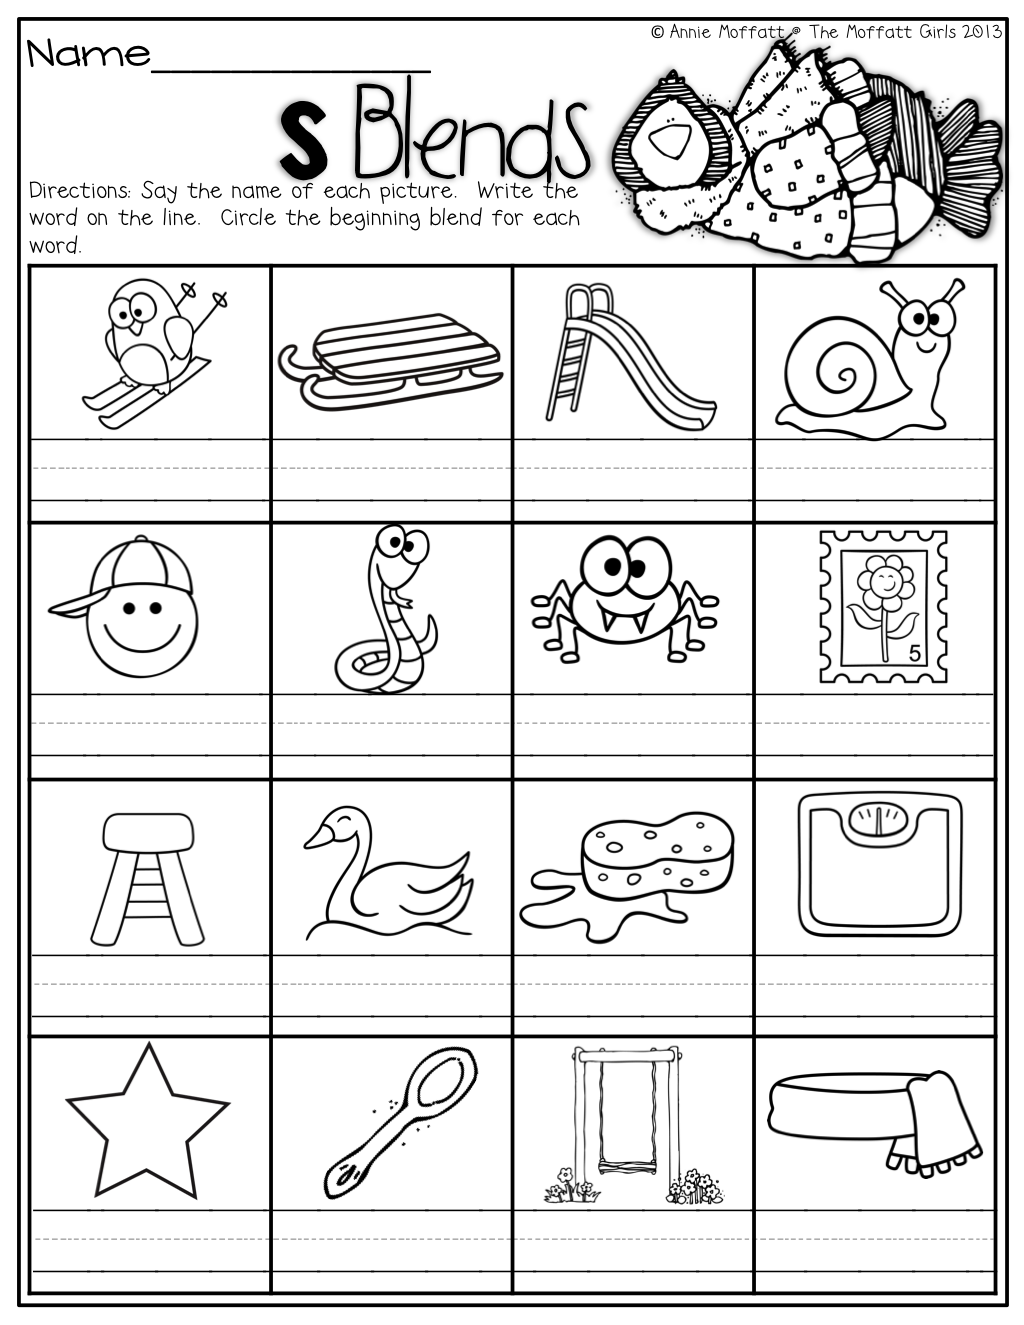 S Blends! | Blends Worksheets, Phonics Blends, 1St Grade Blends throughout Letter S Worksheets For First Grade